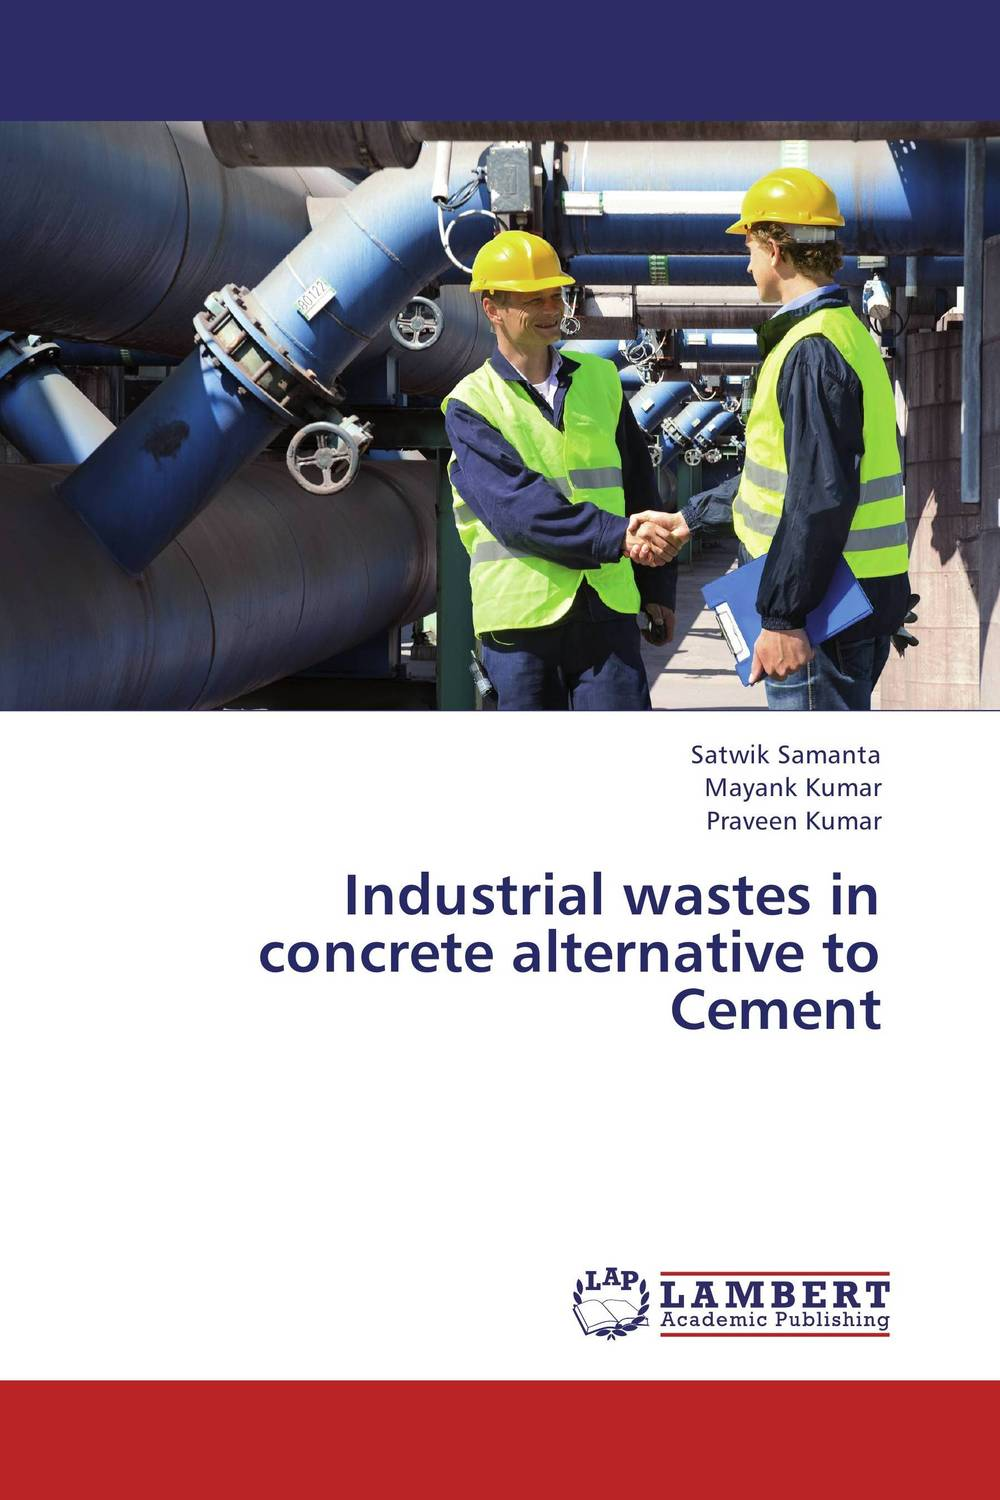 Industrial wastes in concrete alternative to Cement industrial wastes in concrete alternative to cement